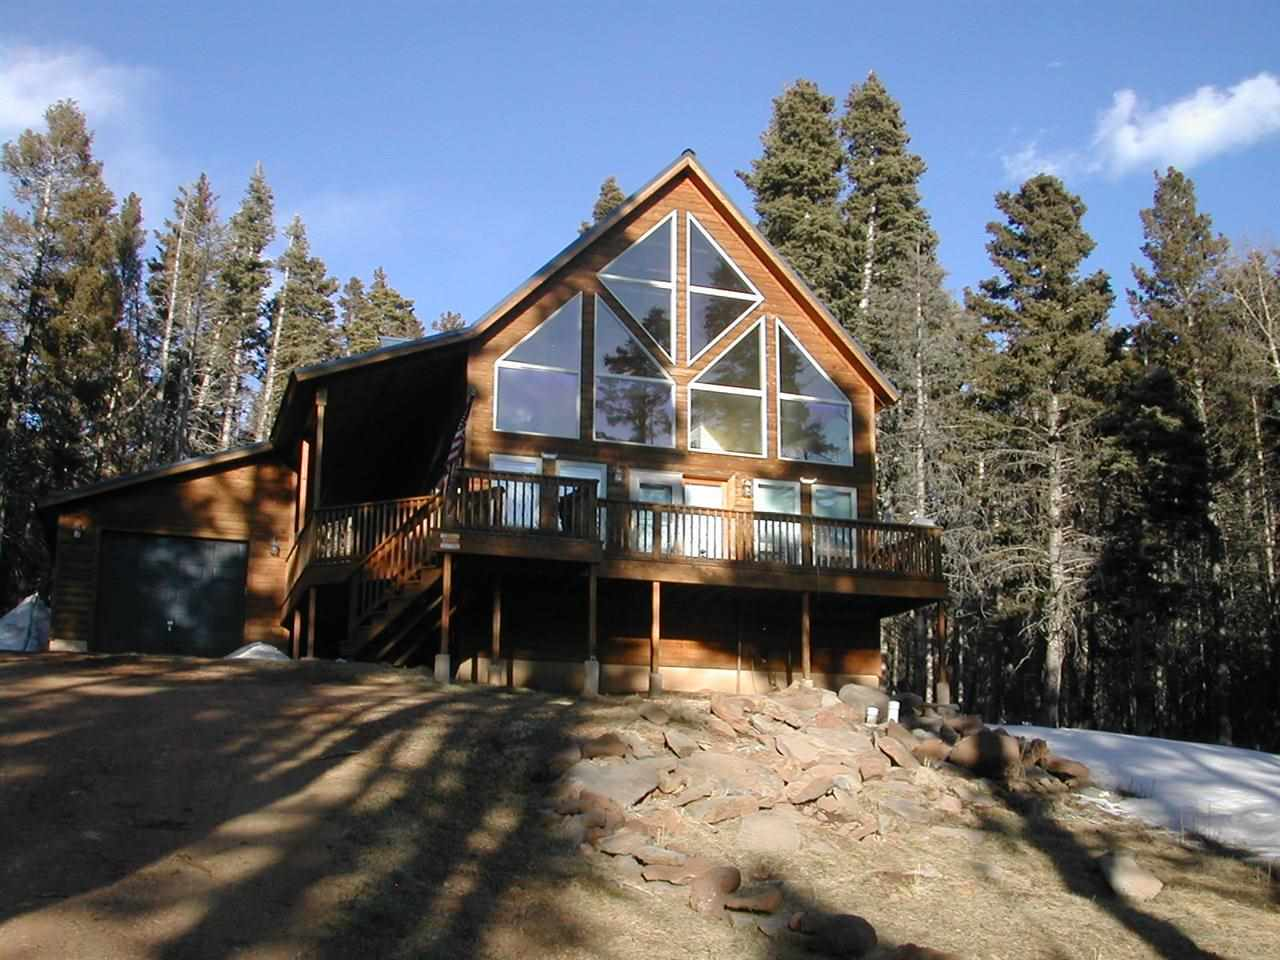 Great location near ski drop off for Heading Home.  Great mountainous views and very nice wooded lot.  1800 sq.ft. Rustic Retreat with huge windows to enjoy the views.  Chalet style with very nice deck to sit on and enjoy watching the wildlife in the area.